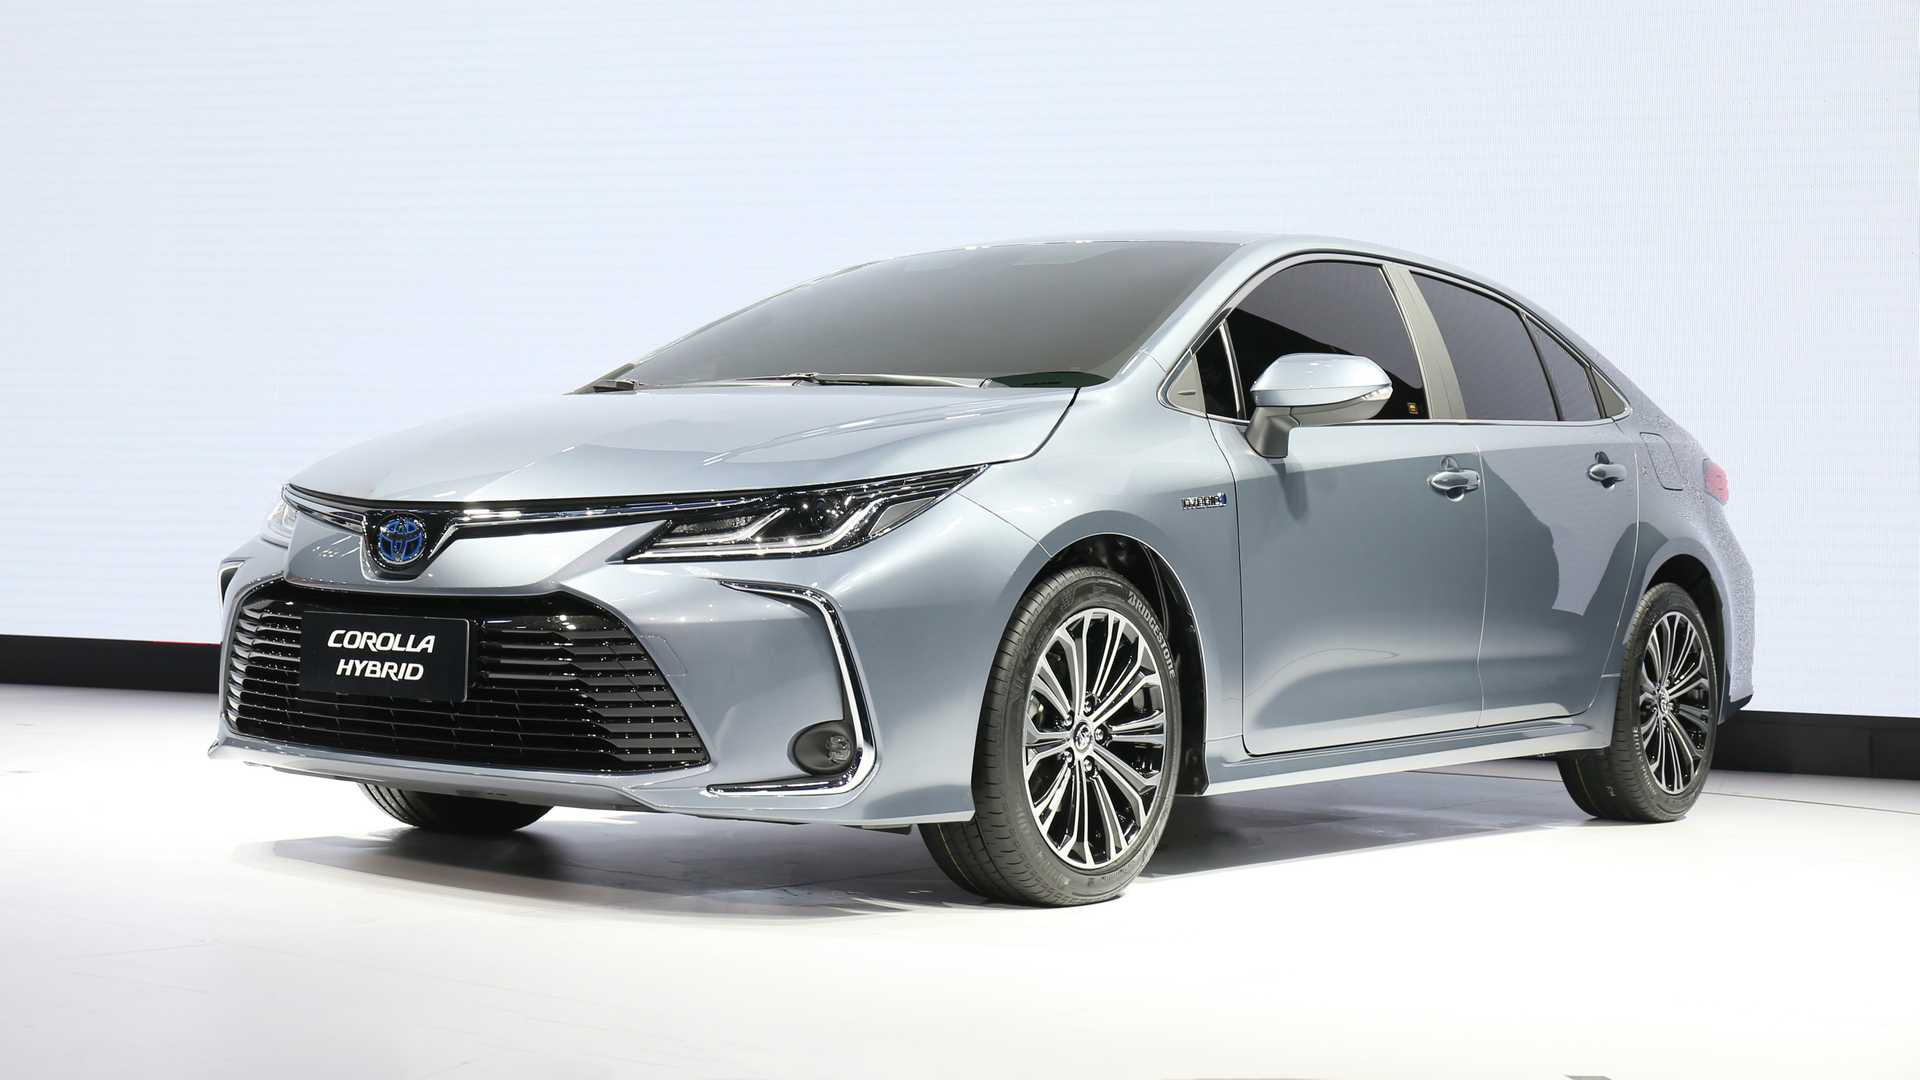 17 New Toyota Corolla 2020 Model Price